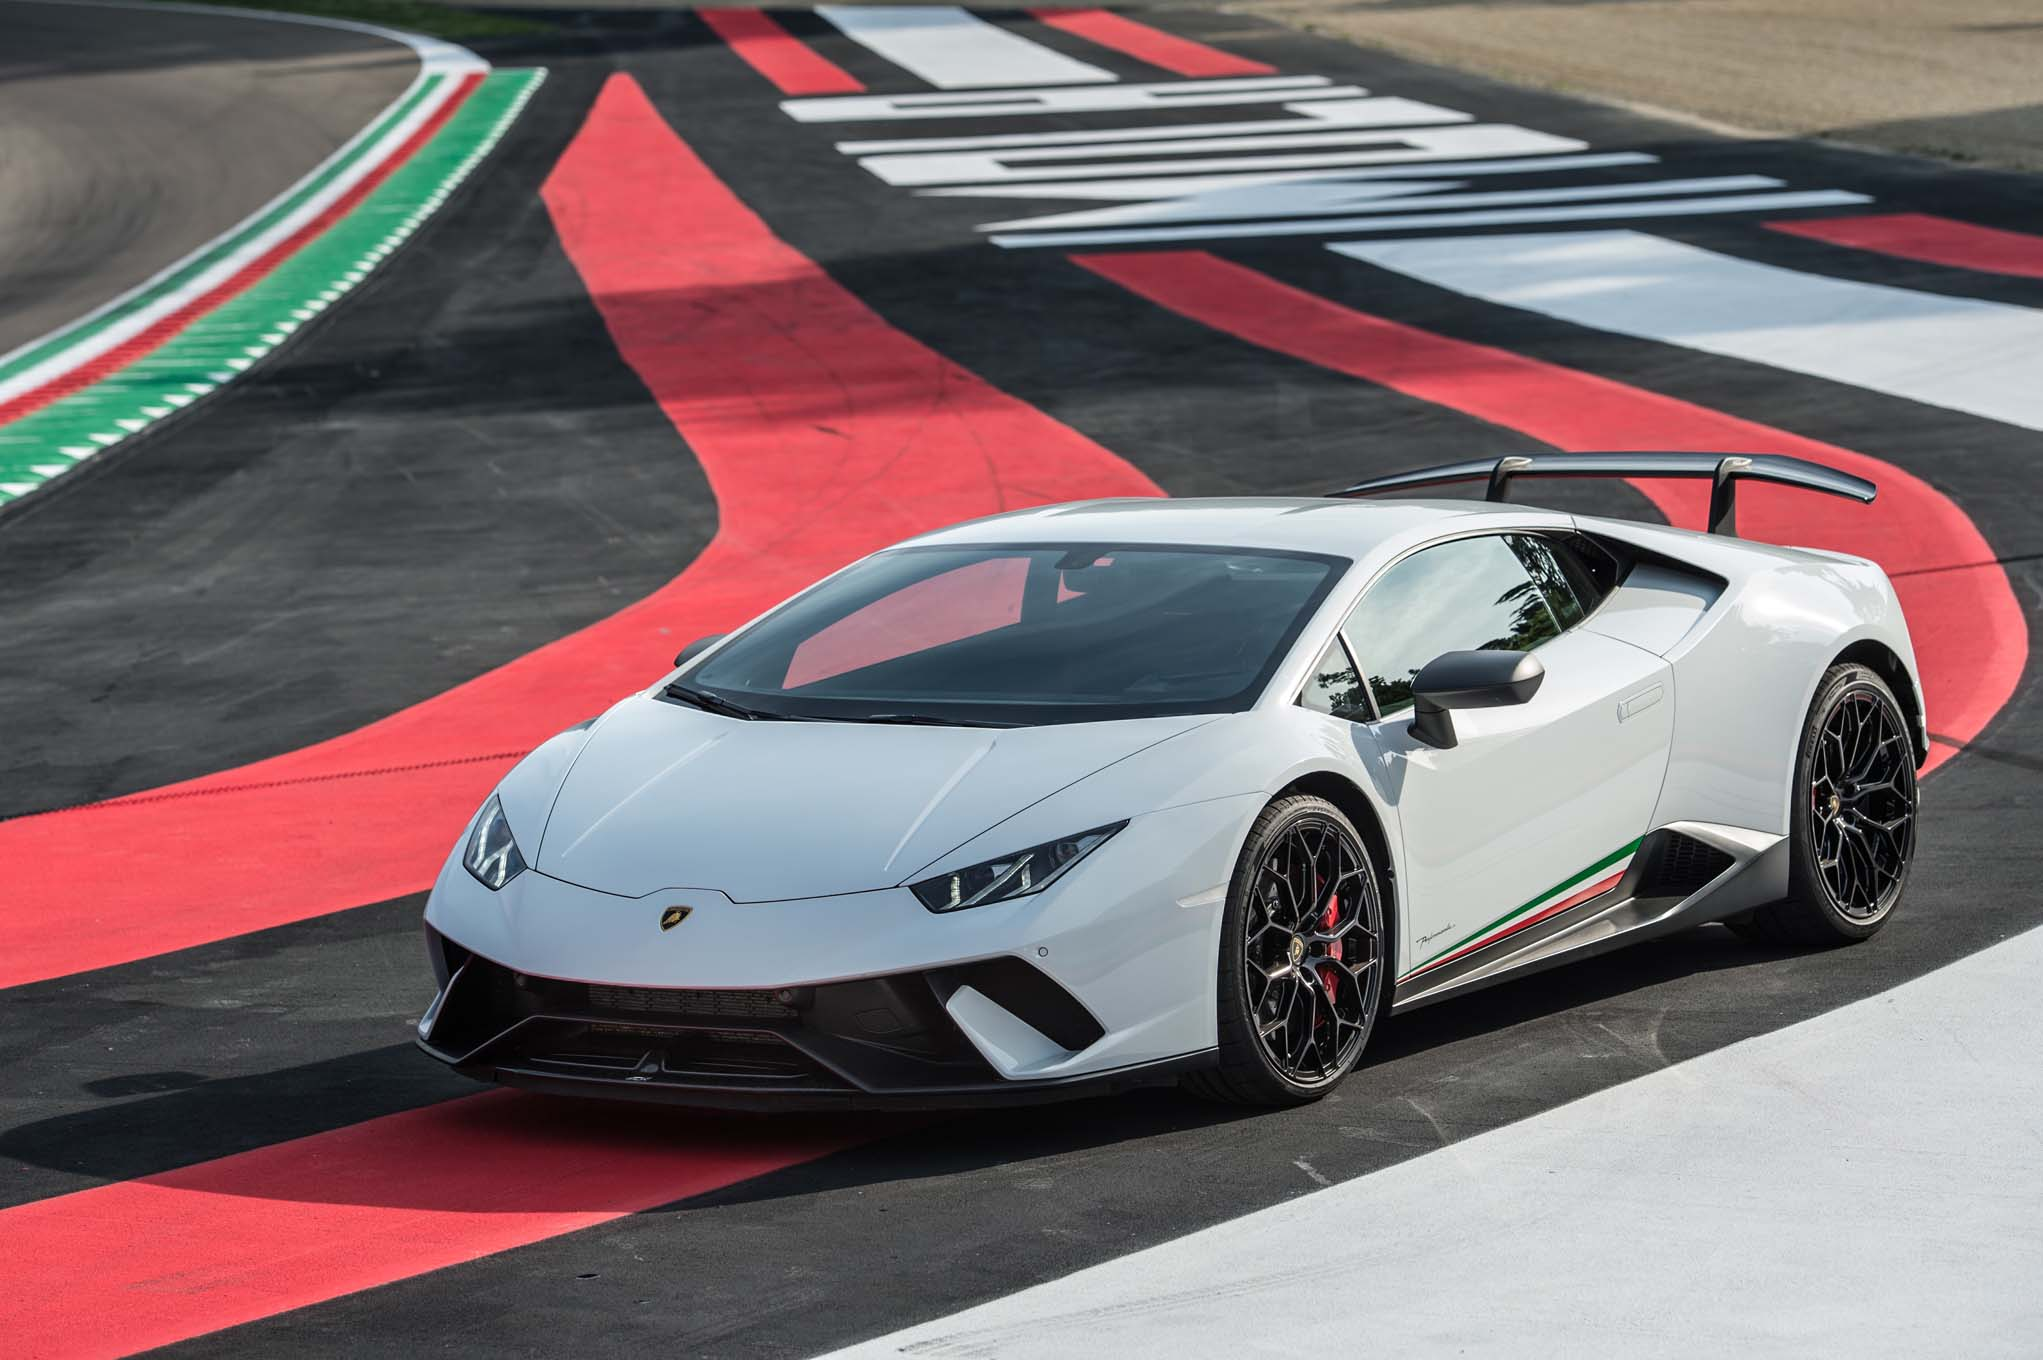 lp motoring the price coupe aventador usa full en car engine guide technical lamborghini in specifications prices tv